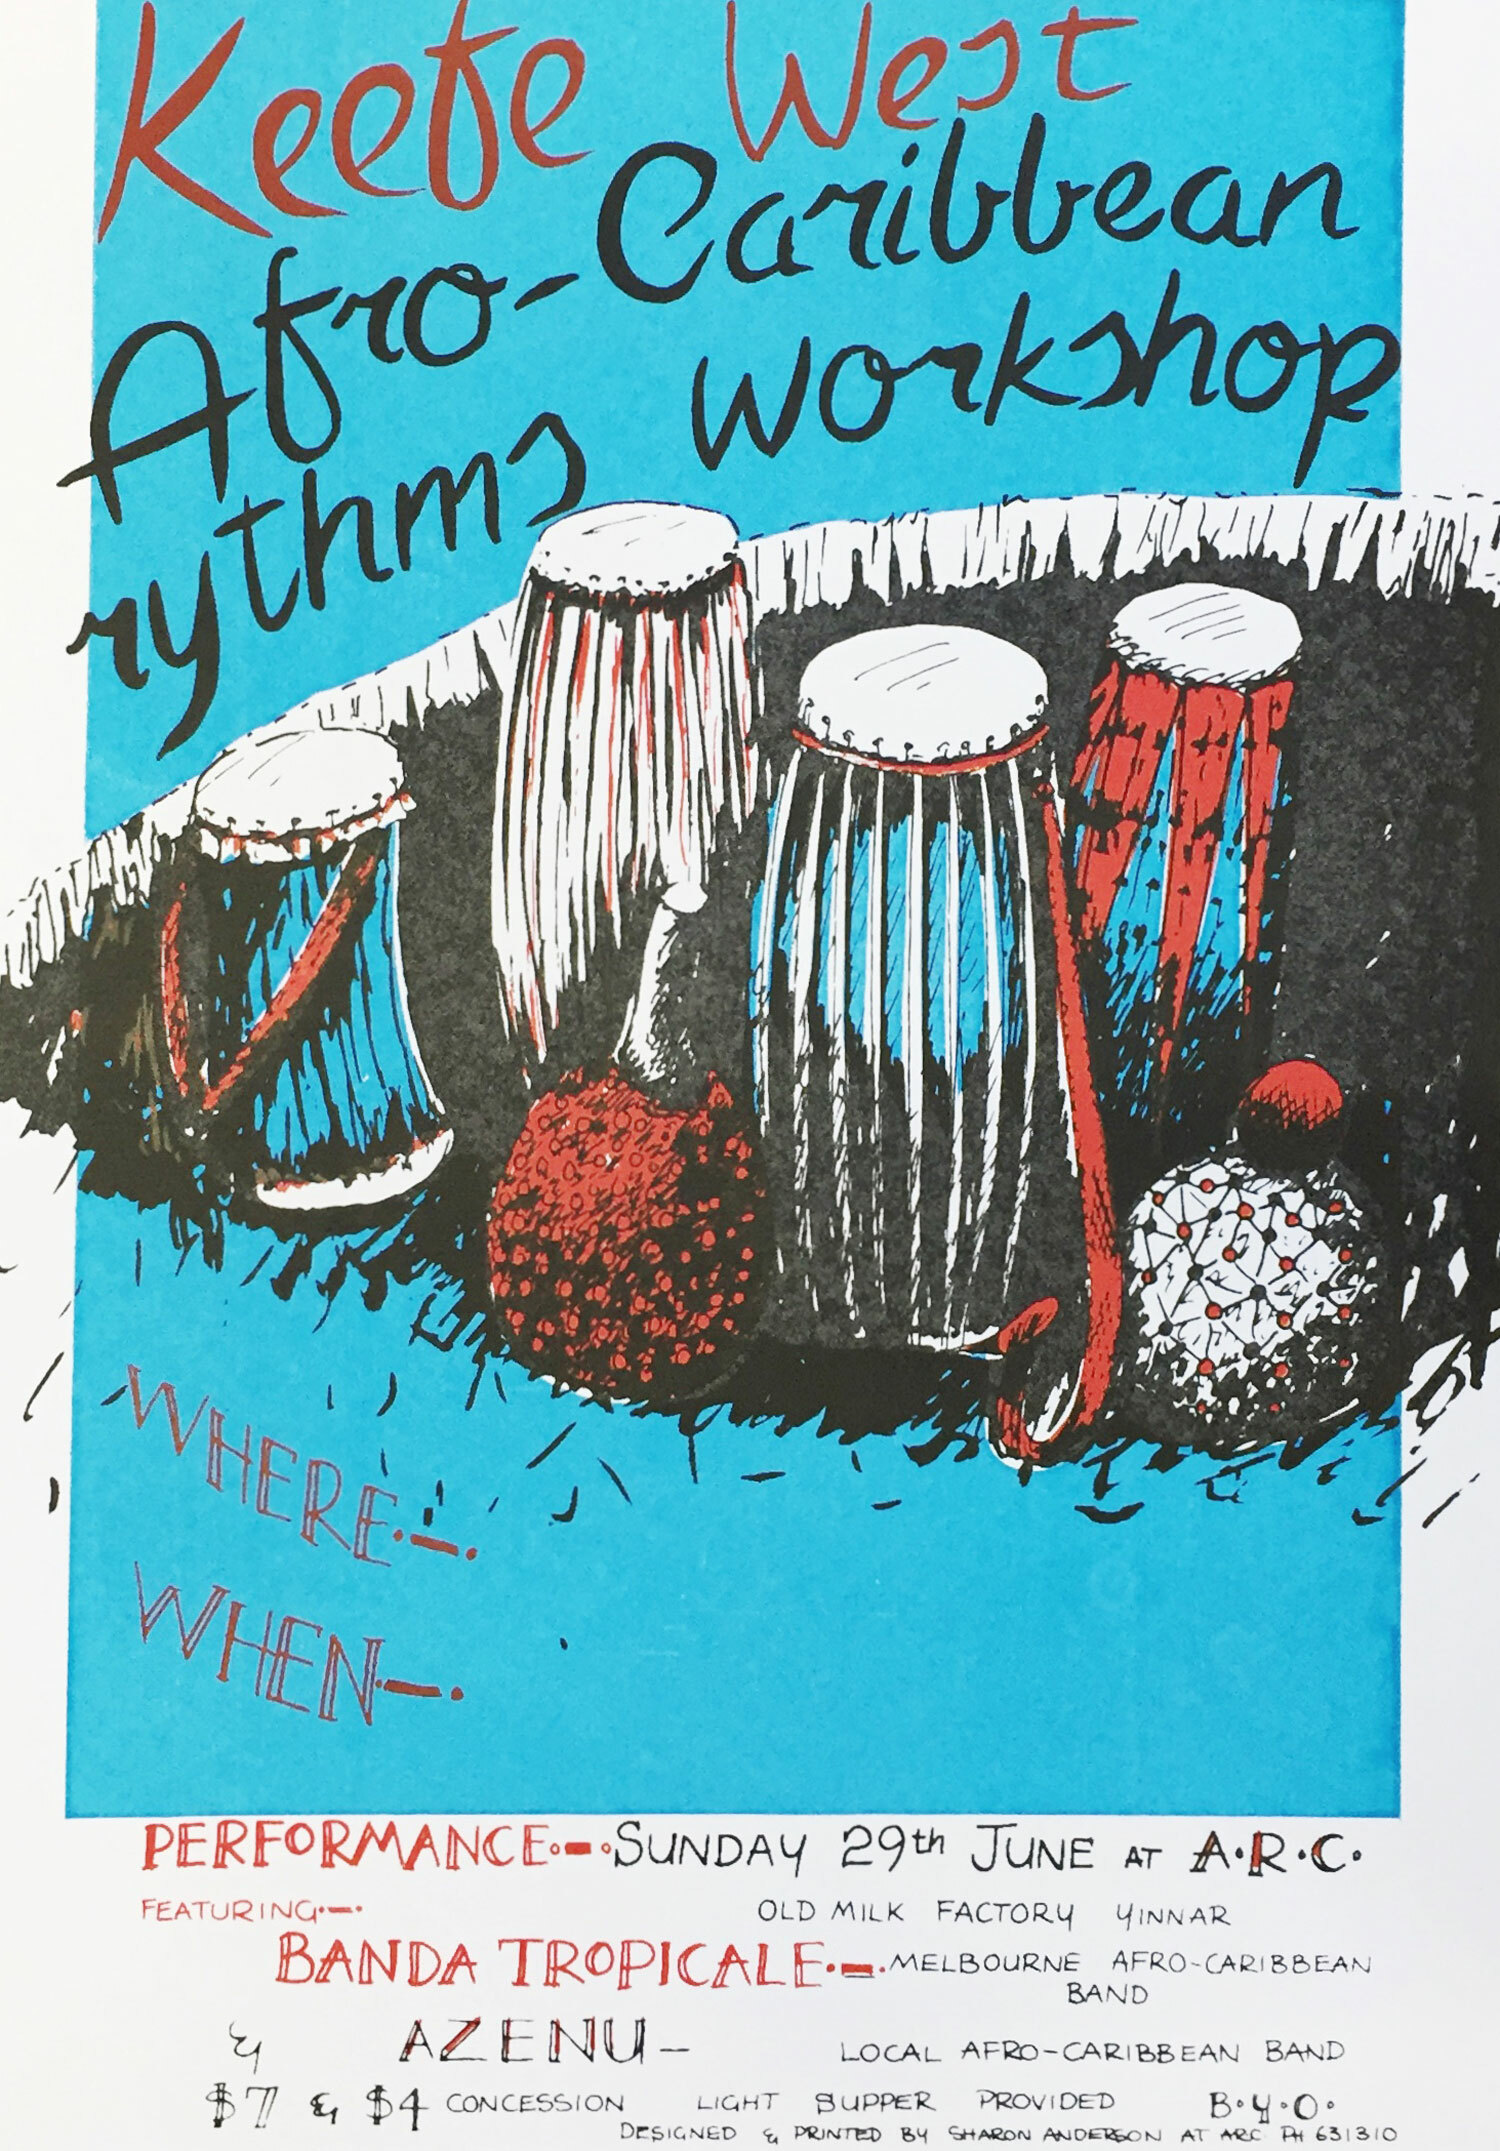 Keefe West Afro-Caribbean Rhythms Workshop / A3 on Cartridge Paper - This poster was to test what I could do with a free-er style, which I usually tried when the payment was nil. I wasn't the only artist doing posters at arc, but I was usually quick to create them. This was a mix of a paper stencil for the blue, and photo stencils for the red and black paint.